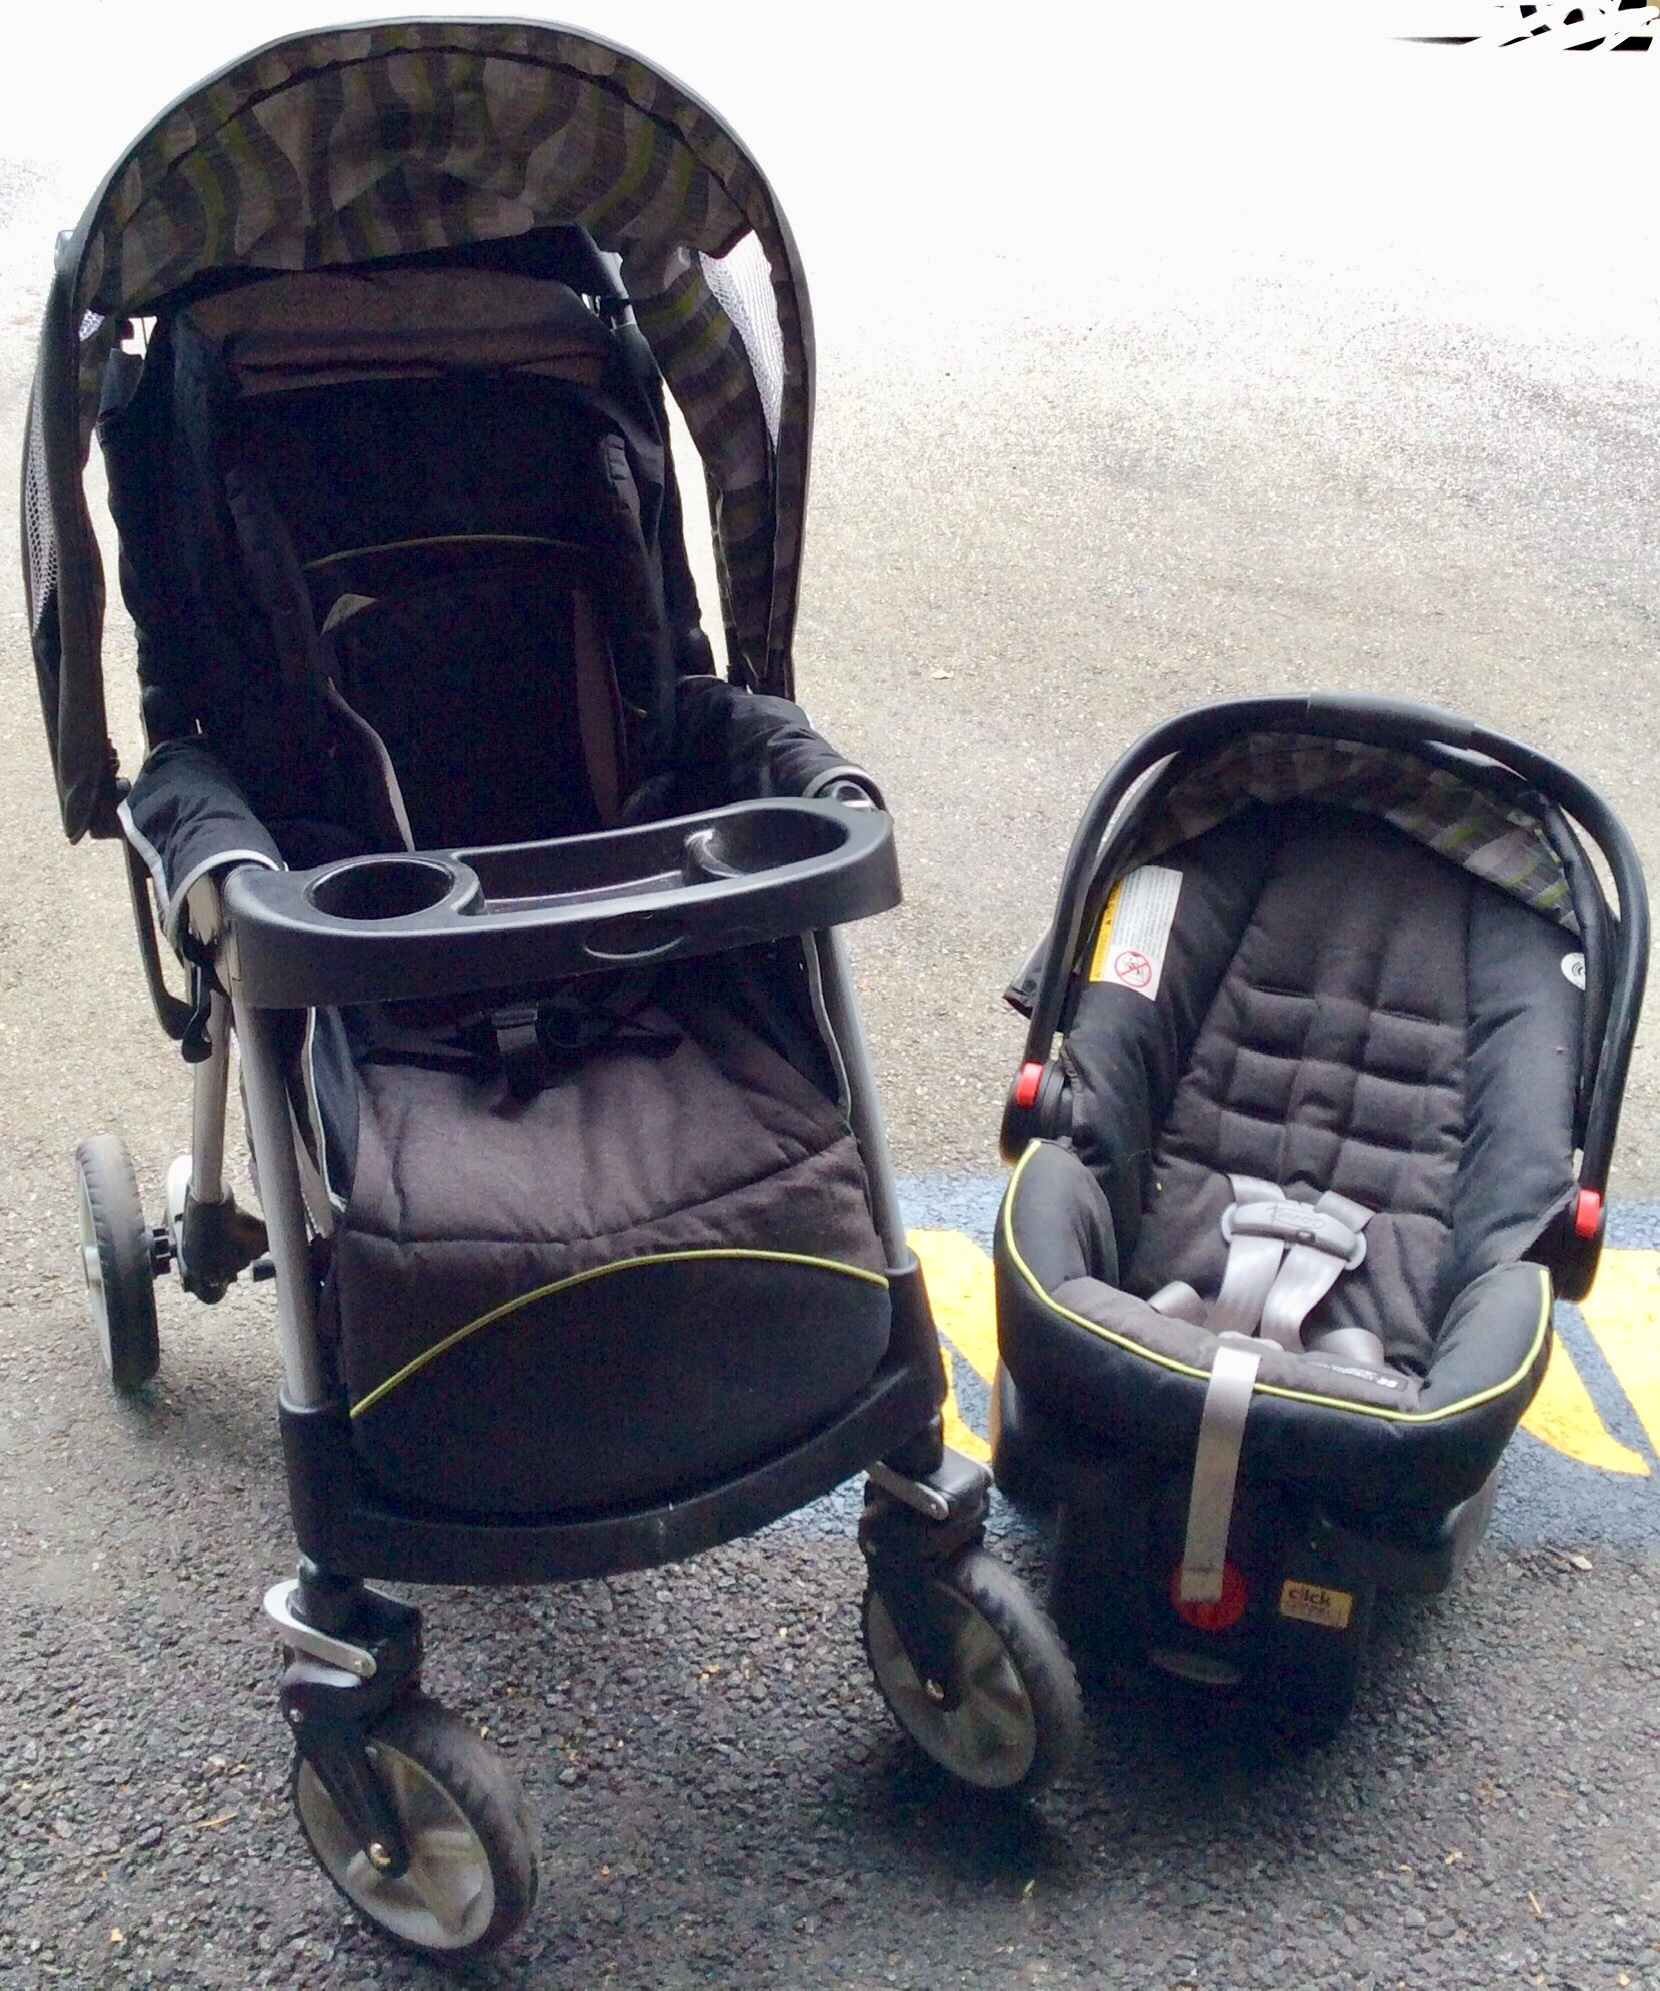 Baby Stroller with matching car seat.